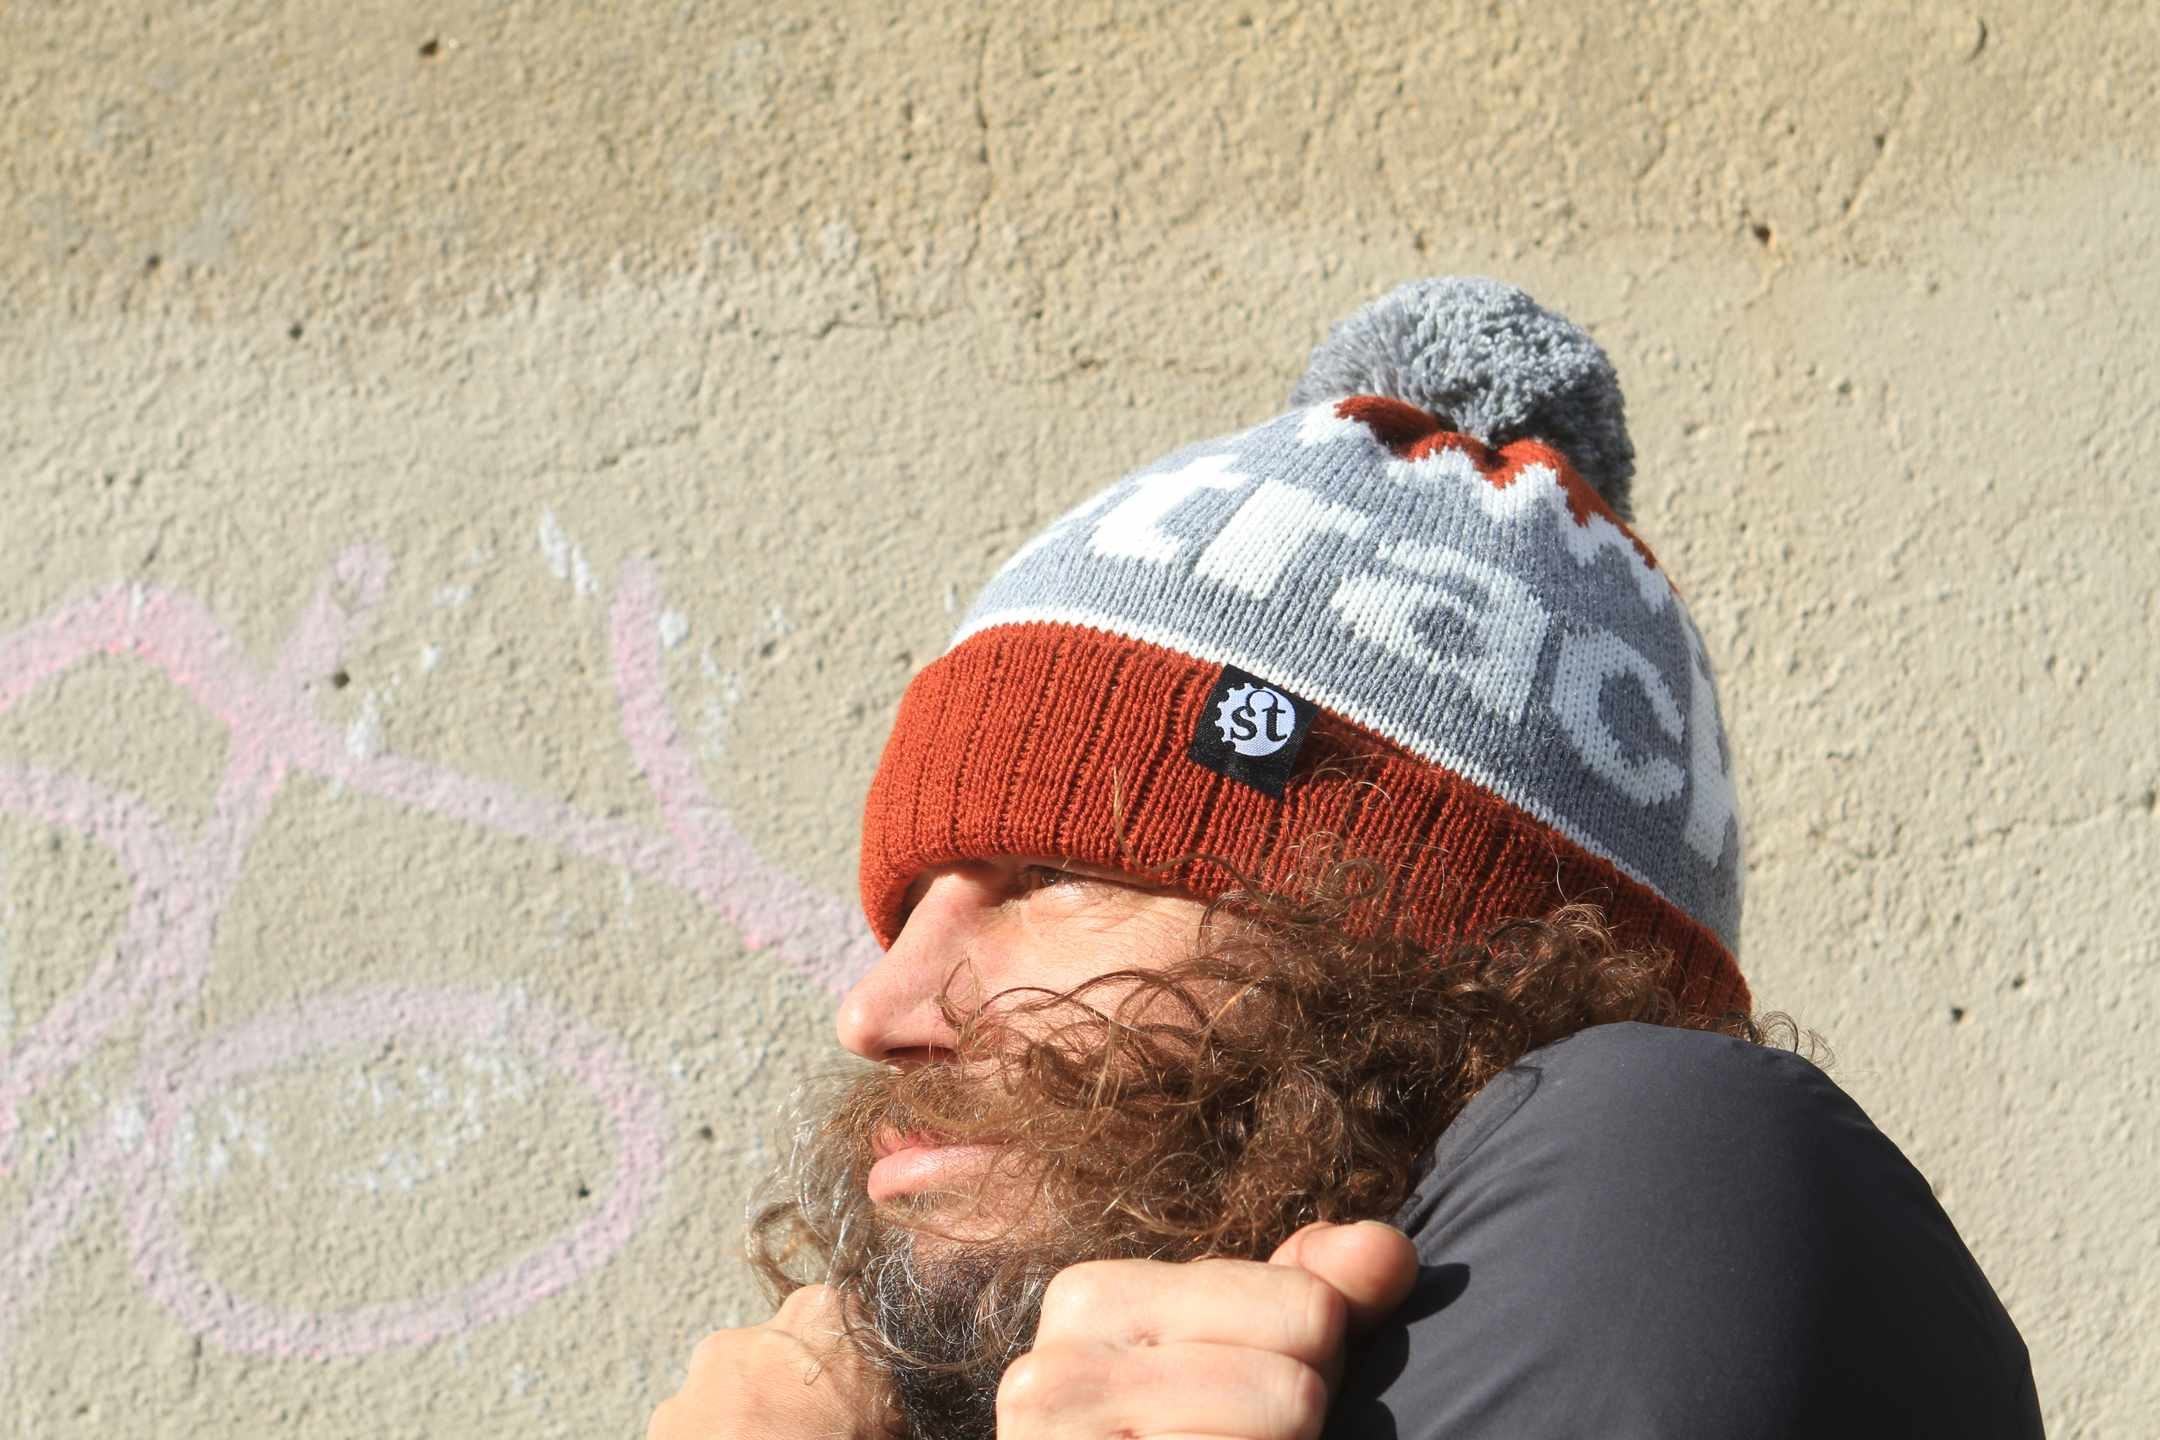 singletrack wooly bobble hat gift for mountain bikers what to get a cyclist for Xmas